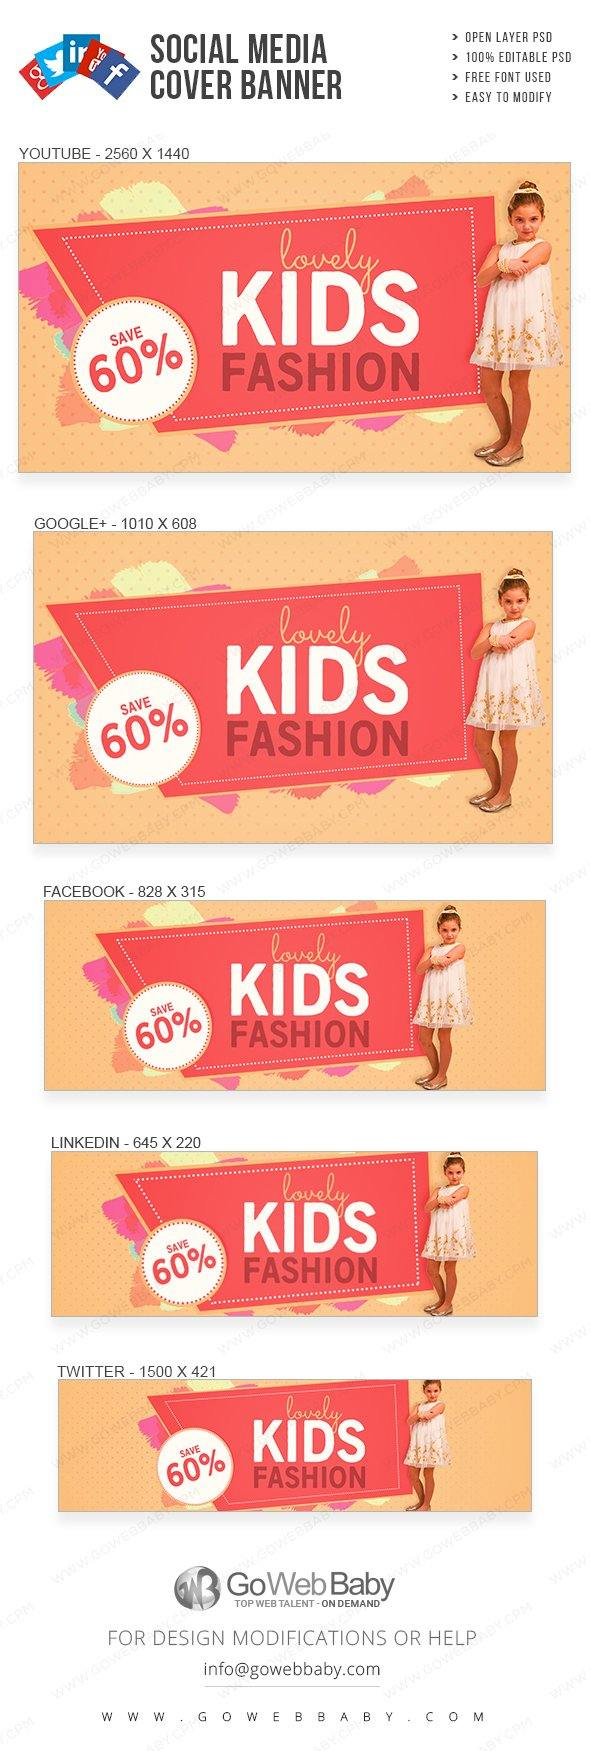 Social Media Cover Banner - Fashion for Kids For Website Marketing